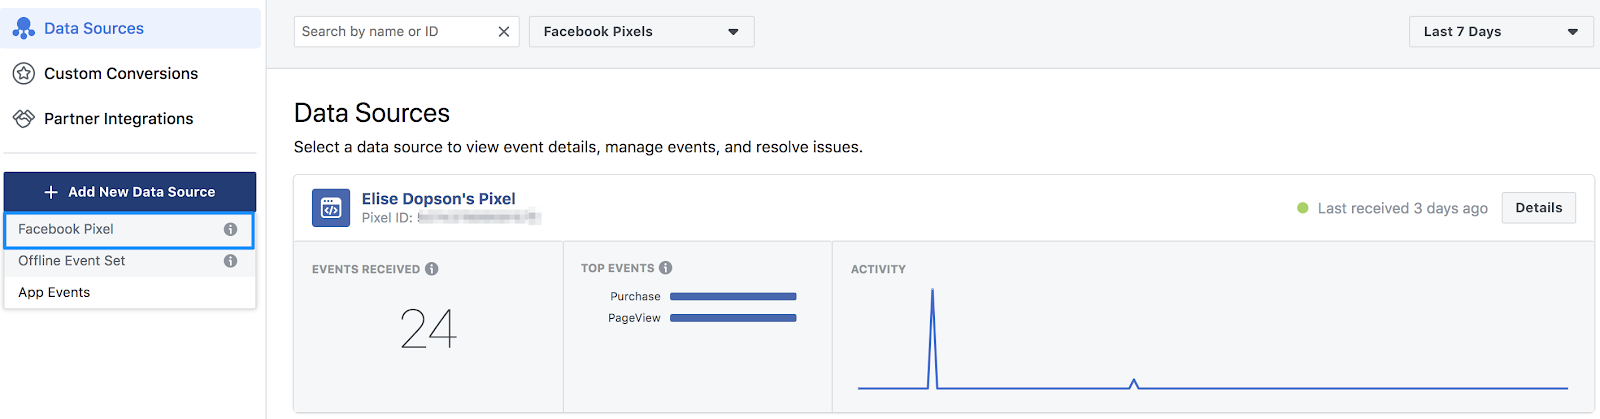 facebook pixel set up for retargeting